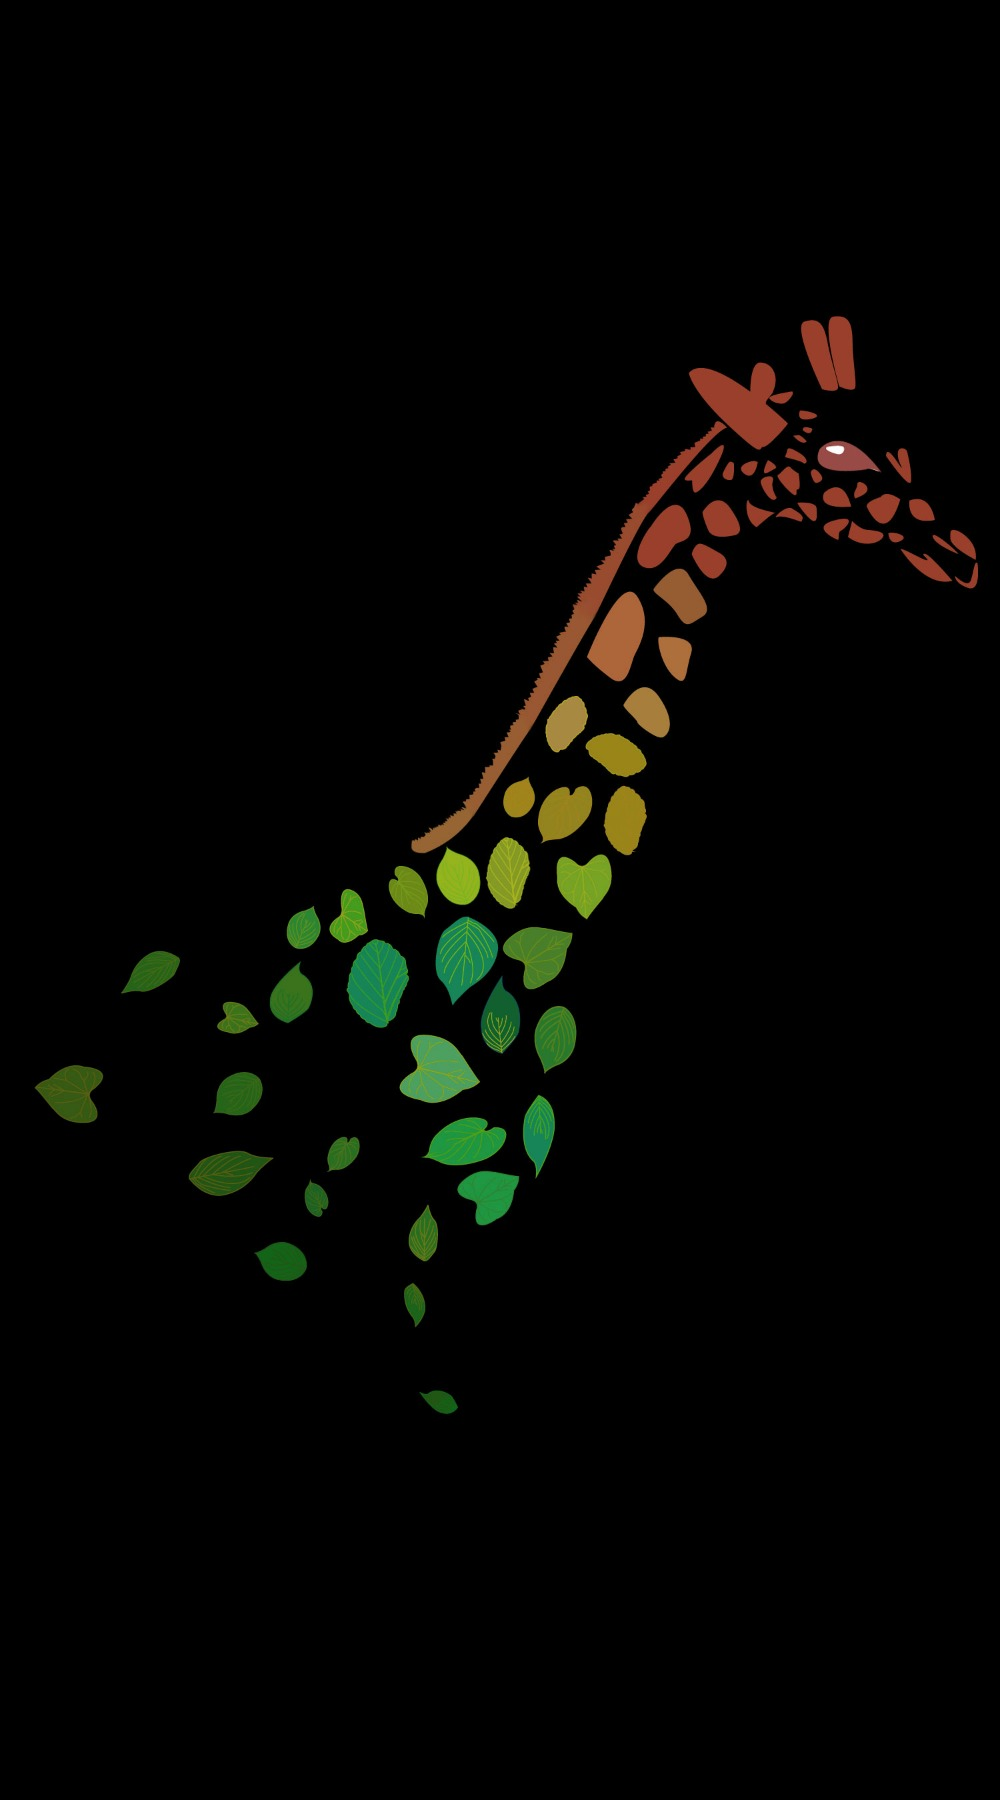 giraffe leaves by tang yau hoong